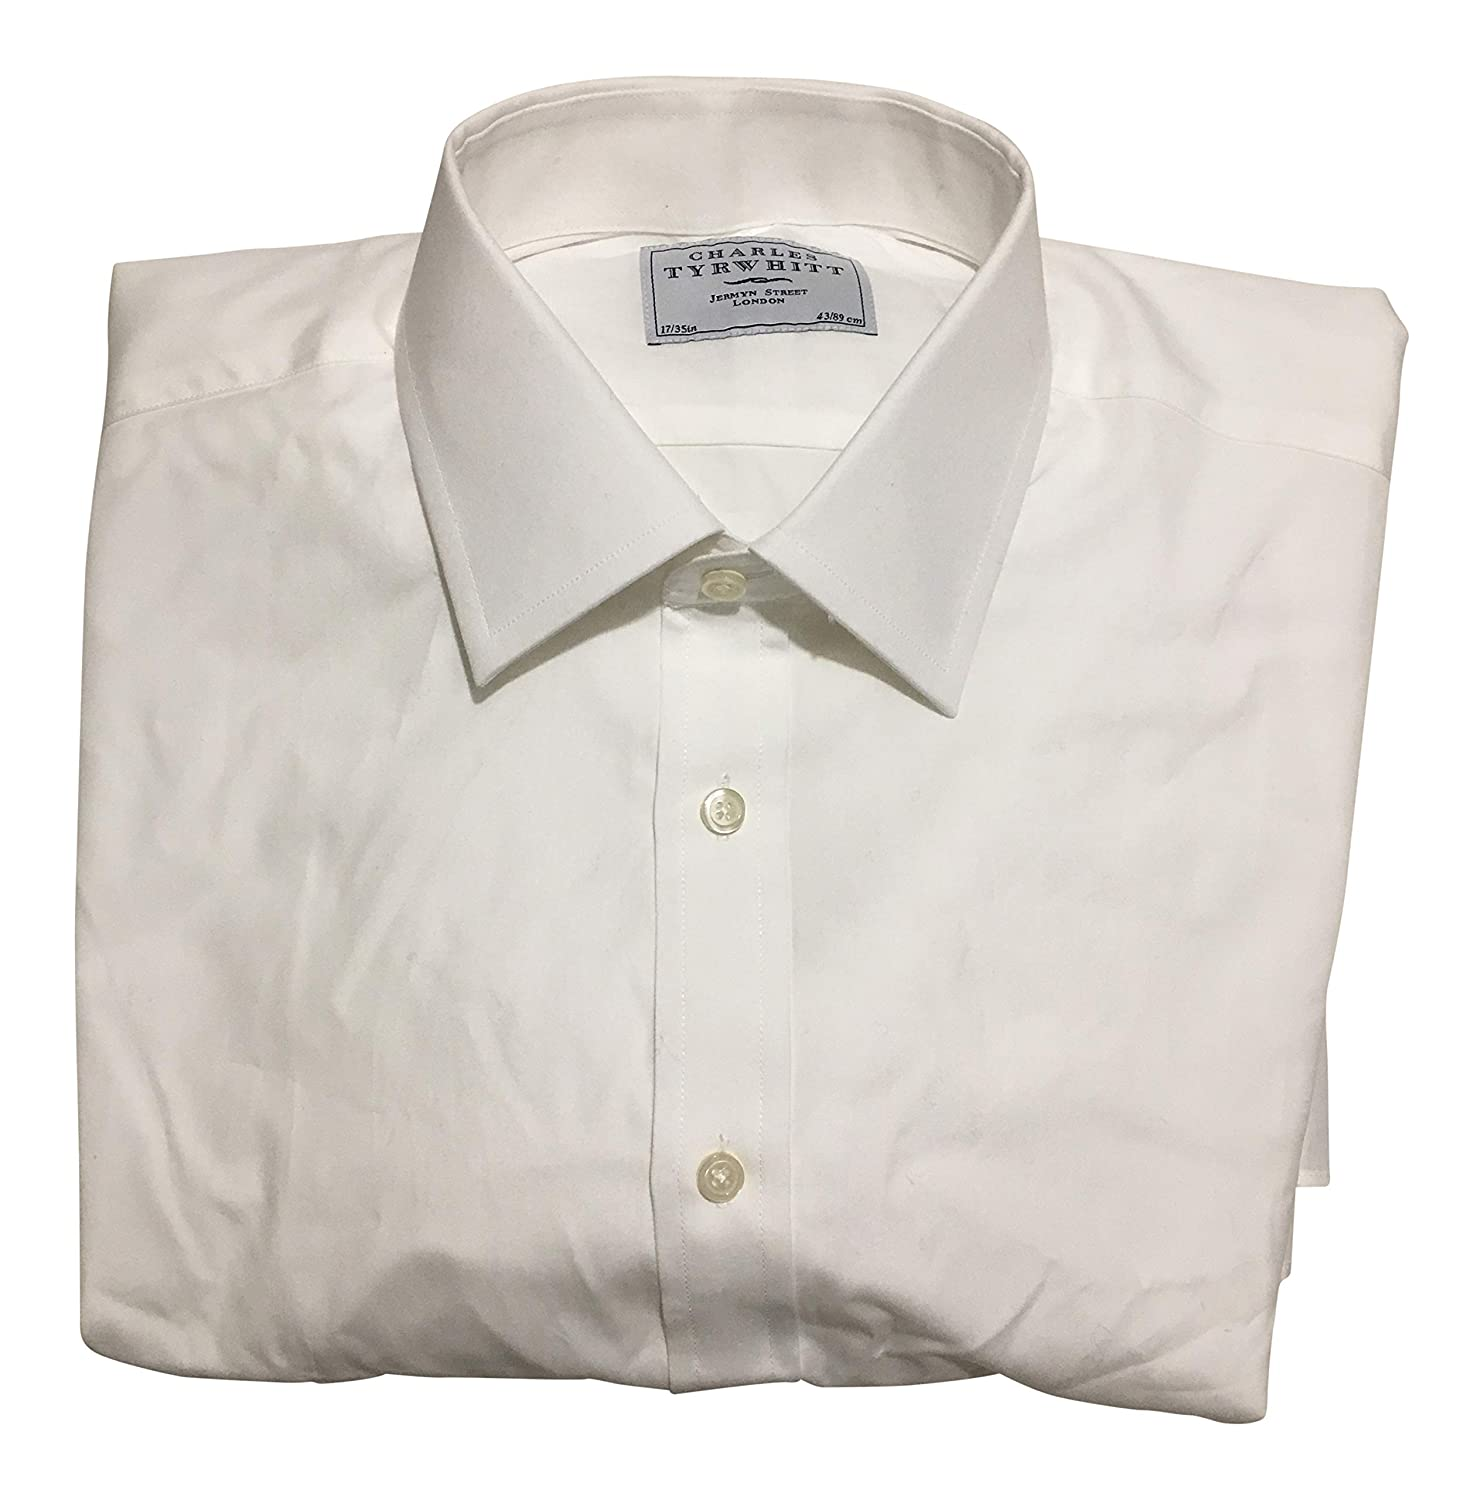 5eb65a71 Tyrwhitt Shirts Amazon | Top Mode Depot